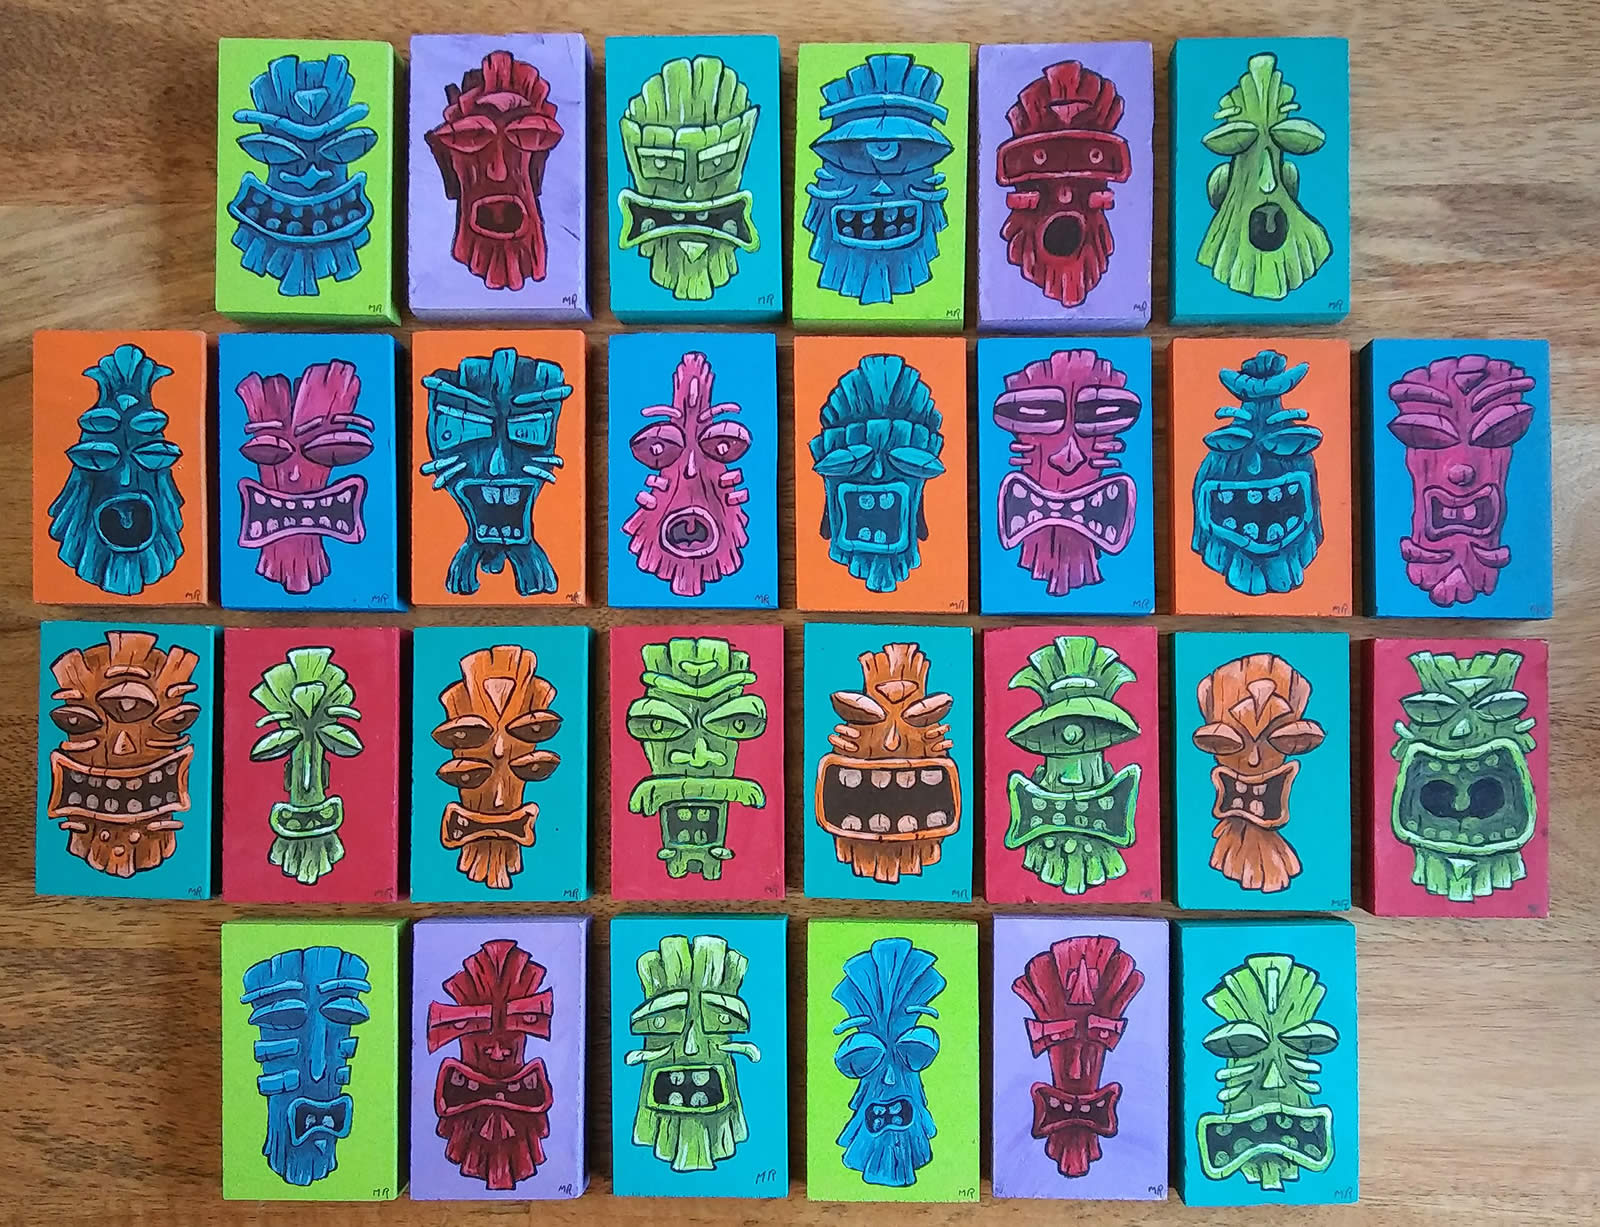 Tiki Art by Mike Rende available in the Mobile Art Machine